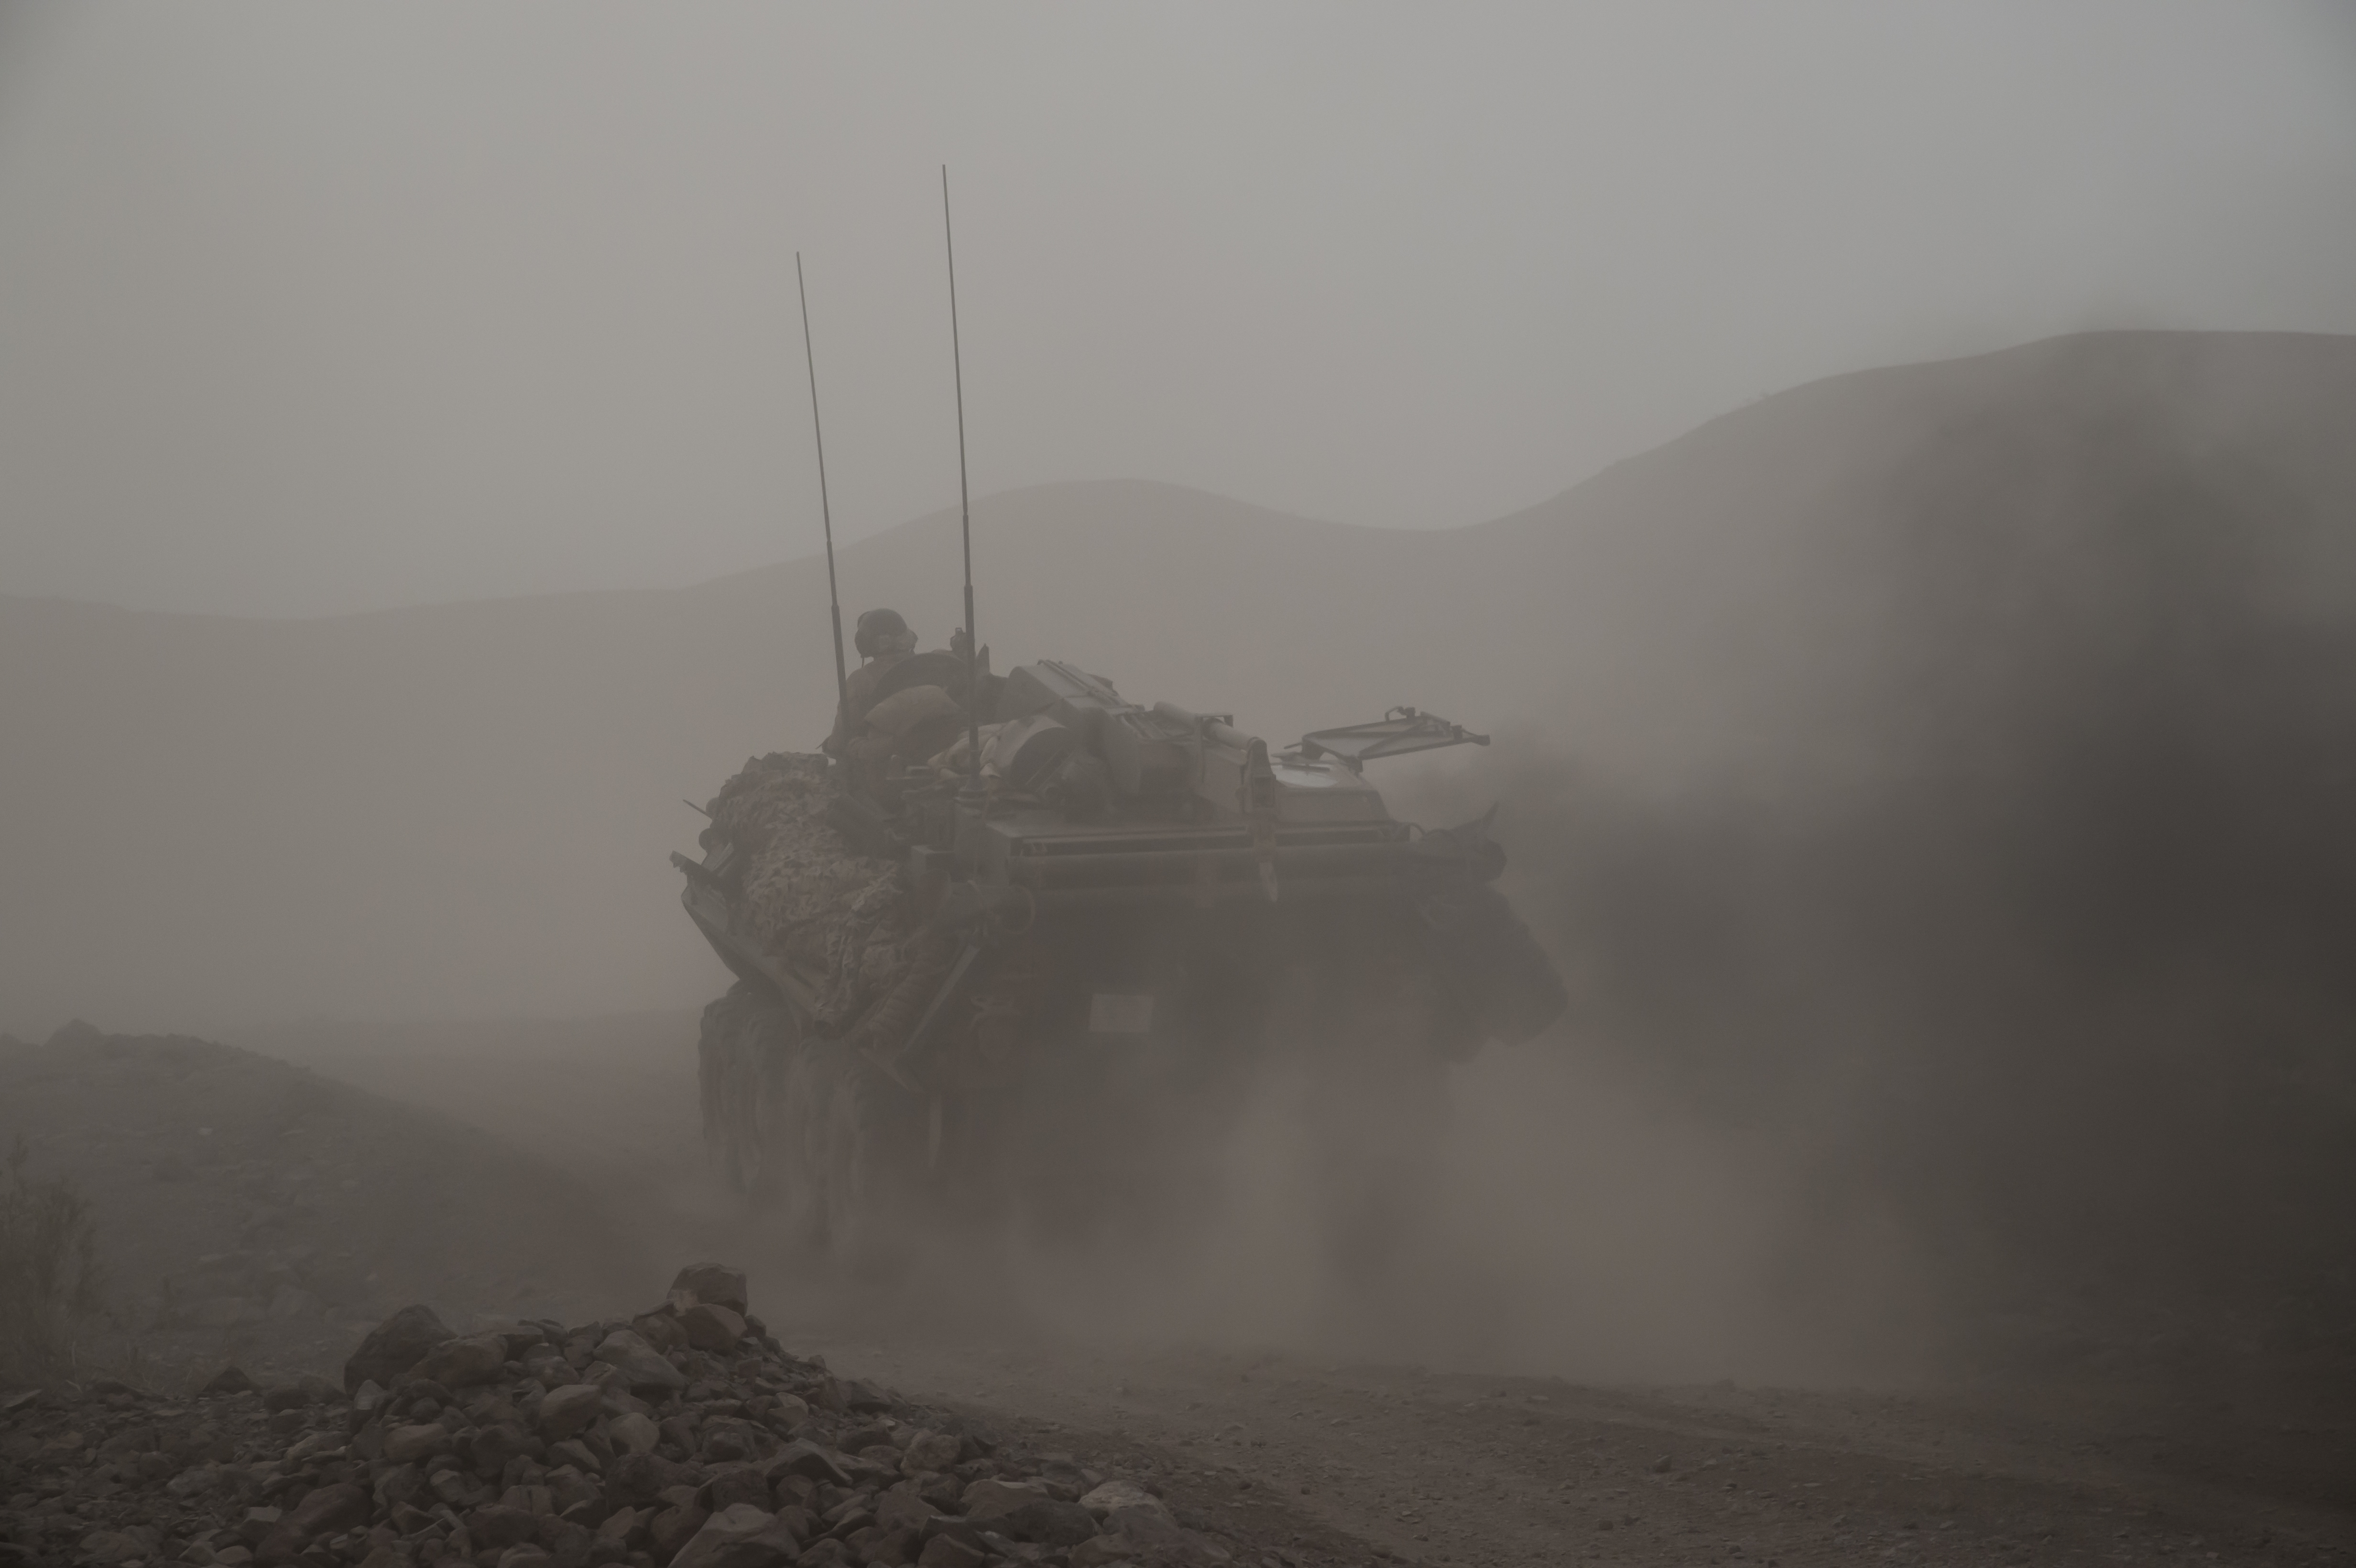 Marines with the 24th Marine Expeditionary Unit in an amphibious assault vehicle are dusted by an MV-22 Osprey during an exercise on the east coast of Africa from the amphibious assault ship USS Bataan (LHD 5) July 9, 2017. Marines with the 24th MEU conduct annual training while deployed with the Bataan Amphibious Ready Group to stay mission ready and maintain Marine Corps standards. Bataan and its ARG are deployed to the U.S. 5th Fleet area of operations in support of maritime security operations designed to reassure allies and partners and preserve the freedom of navigation and the free flow of commerce in the region. (U.S. Air National Guard photo by Tech. Sgt. Joe Harwood)